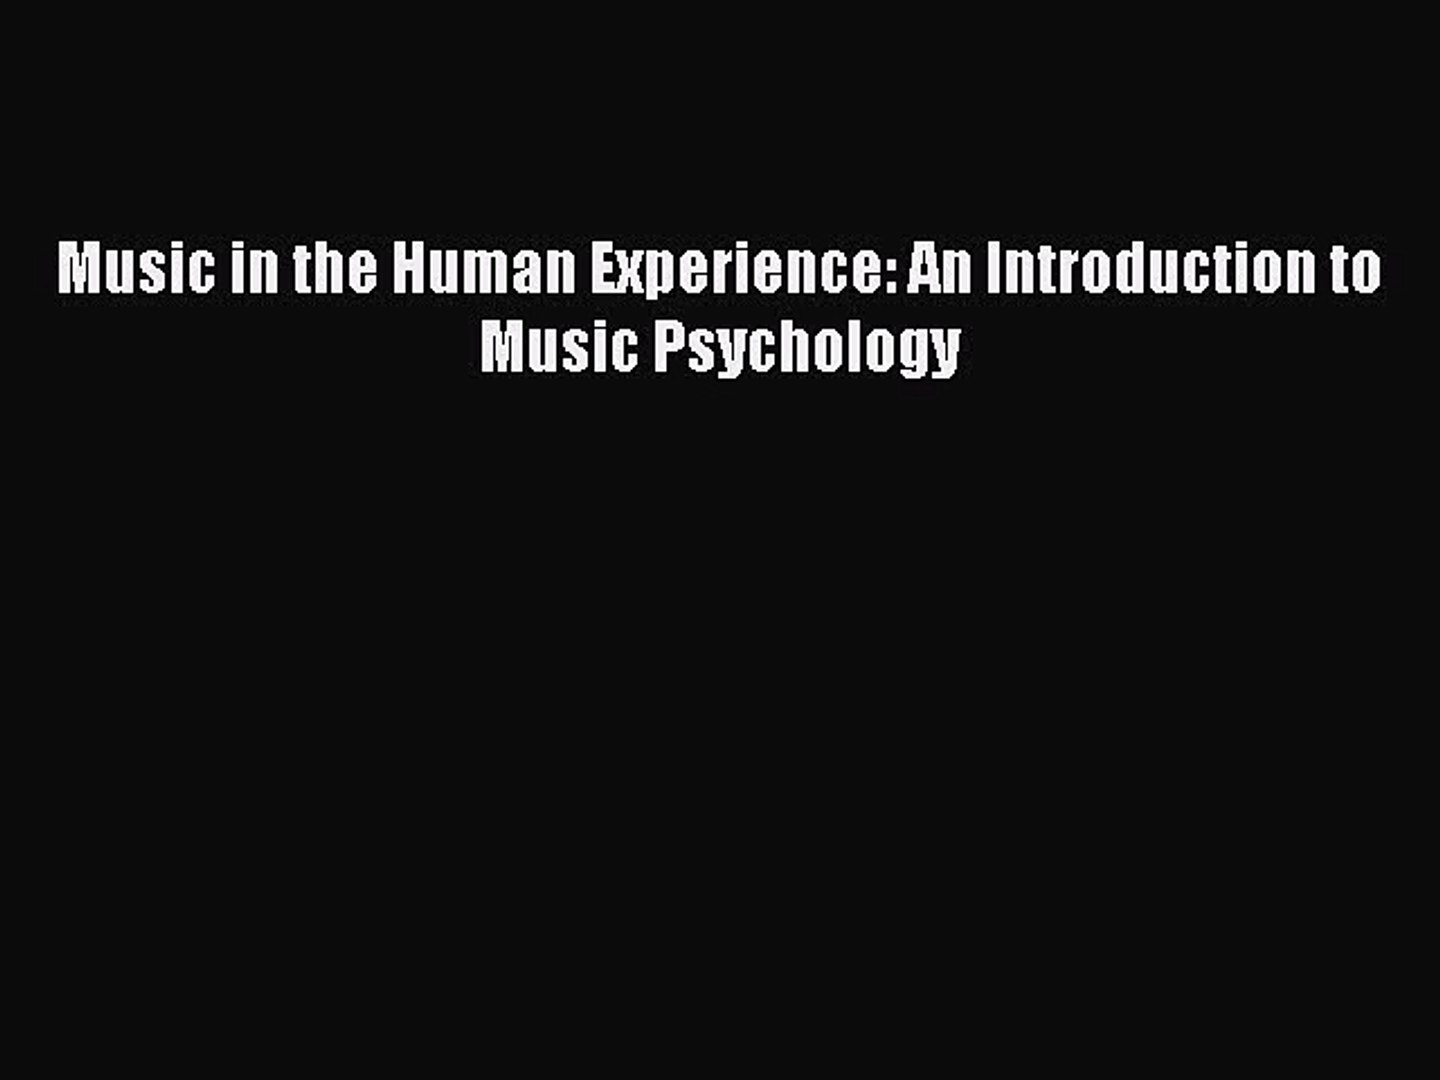 Download Music in the Human Experience: An Introduction to Music Psychology Ebook Free